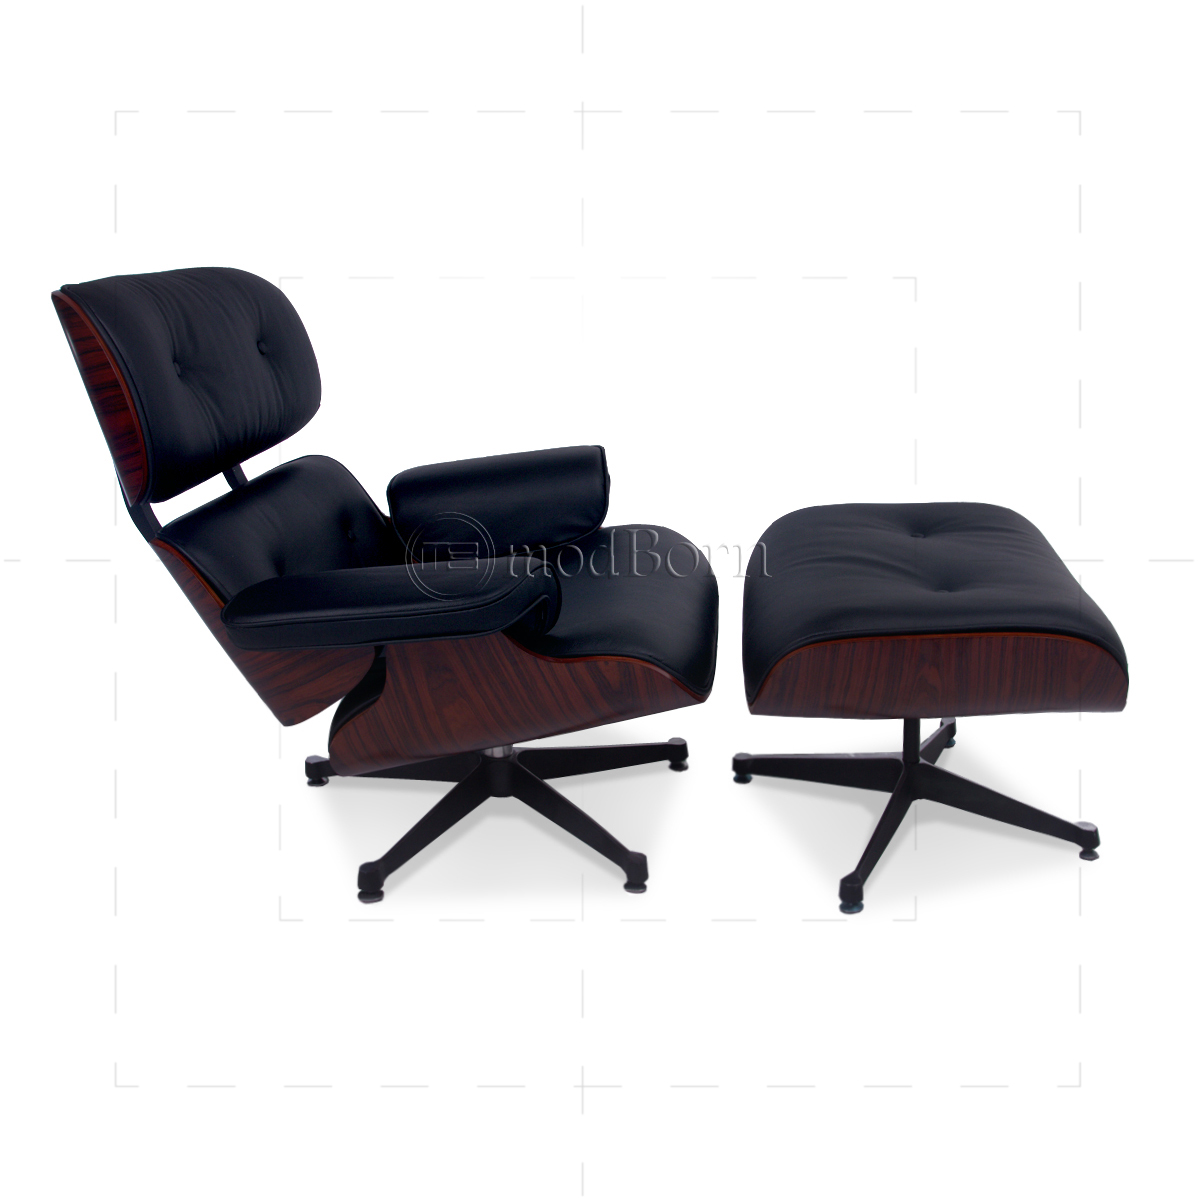 Enjoyable Eames Style Leather Chair Eames Style Lounge Chair And Unemploymentrelief Wooden Chair Designs For Living Room Unemploymentrelieforg